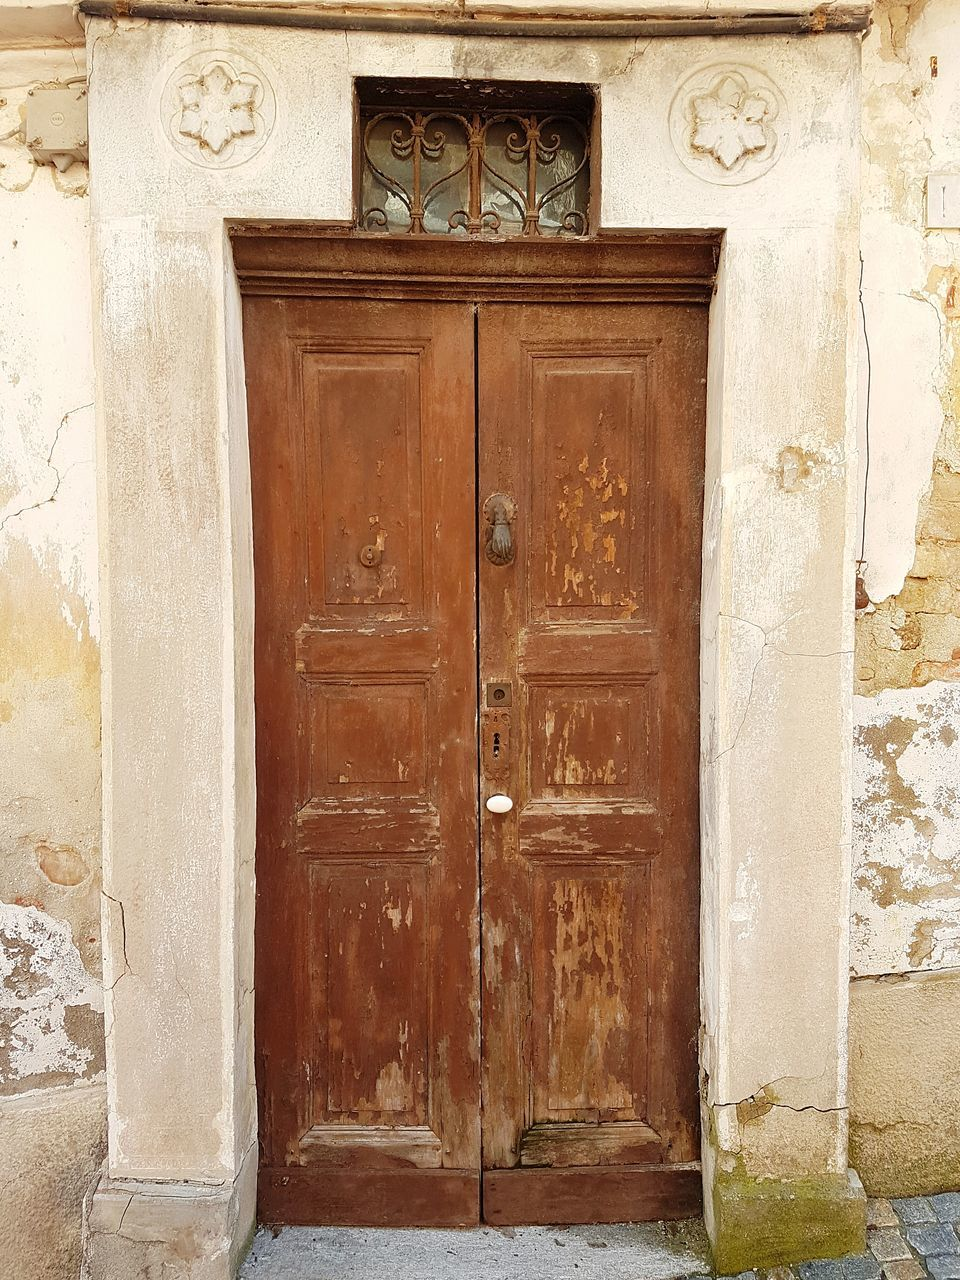 door, closed, entrance, safety, security, protection, closed door, doorway, outdoors, no people, entry, built structure, day, house, wood - material, architecture, history, building exterior, lock, close-up